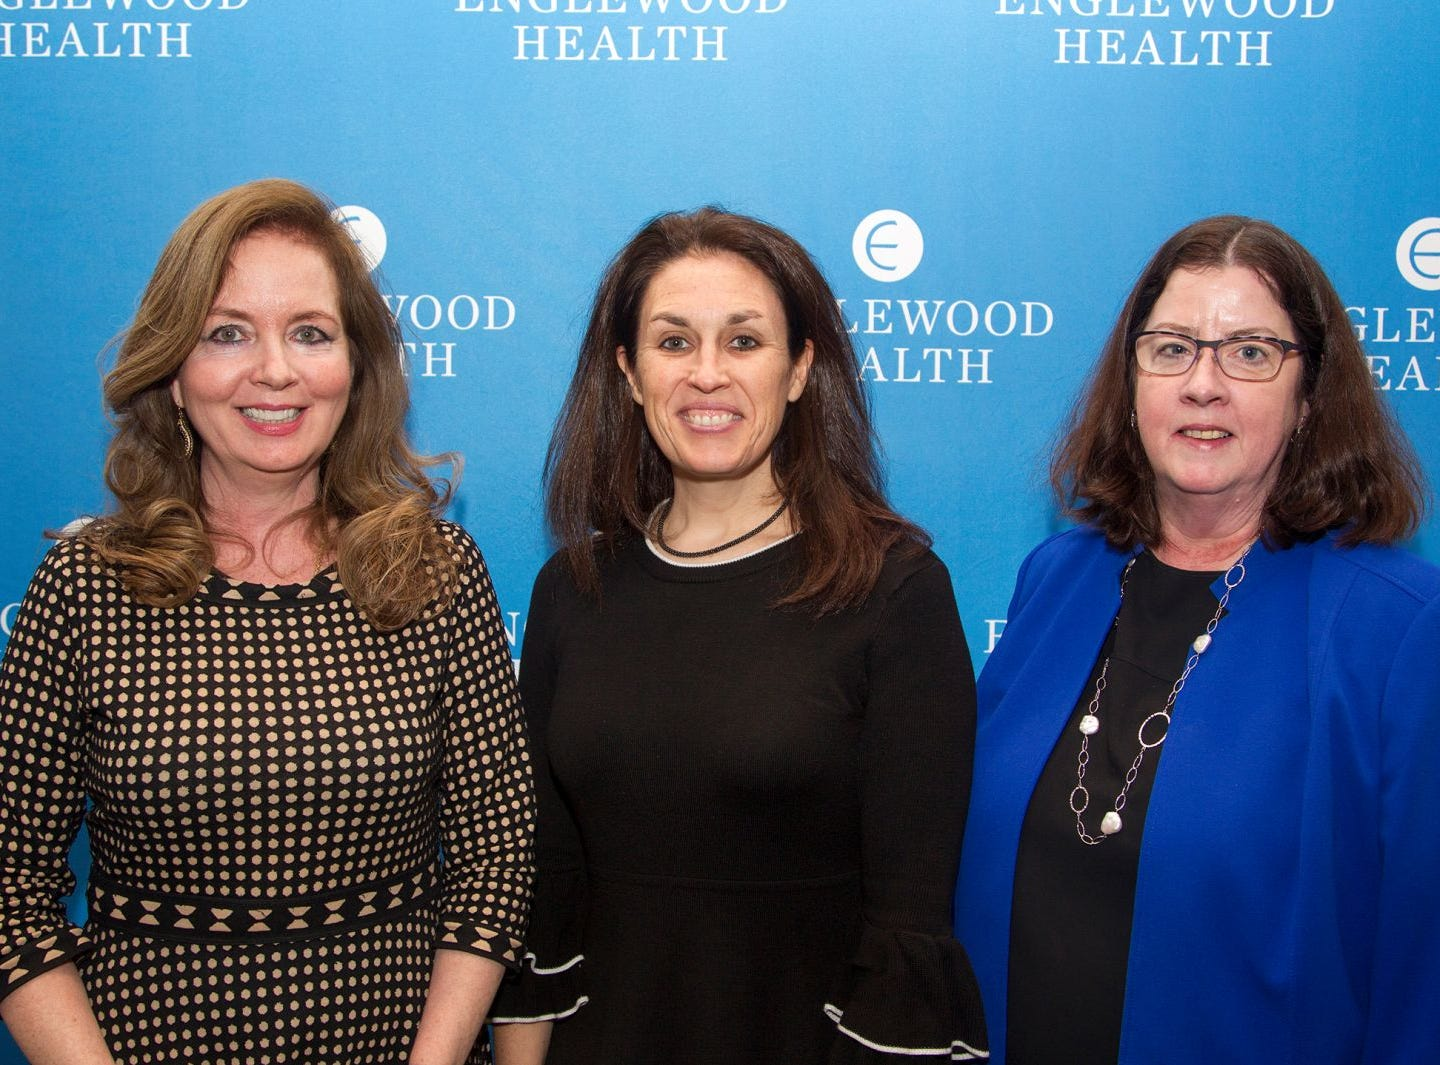 Claire Rizzo, Jamie Ketas, Kathy Kaminsky. EEnglewood Health held its annual Medical Staff Recognition Dinner at Rockliegh Country Club. 01/17/2019